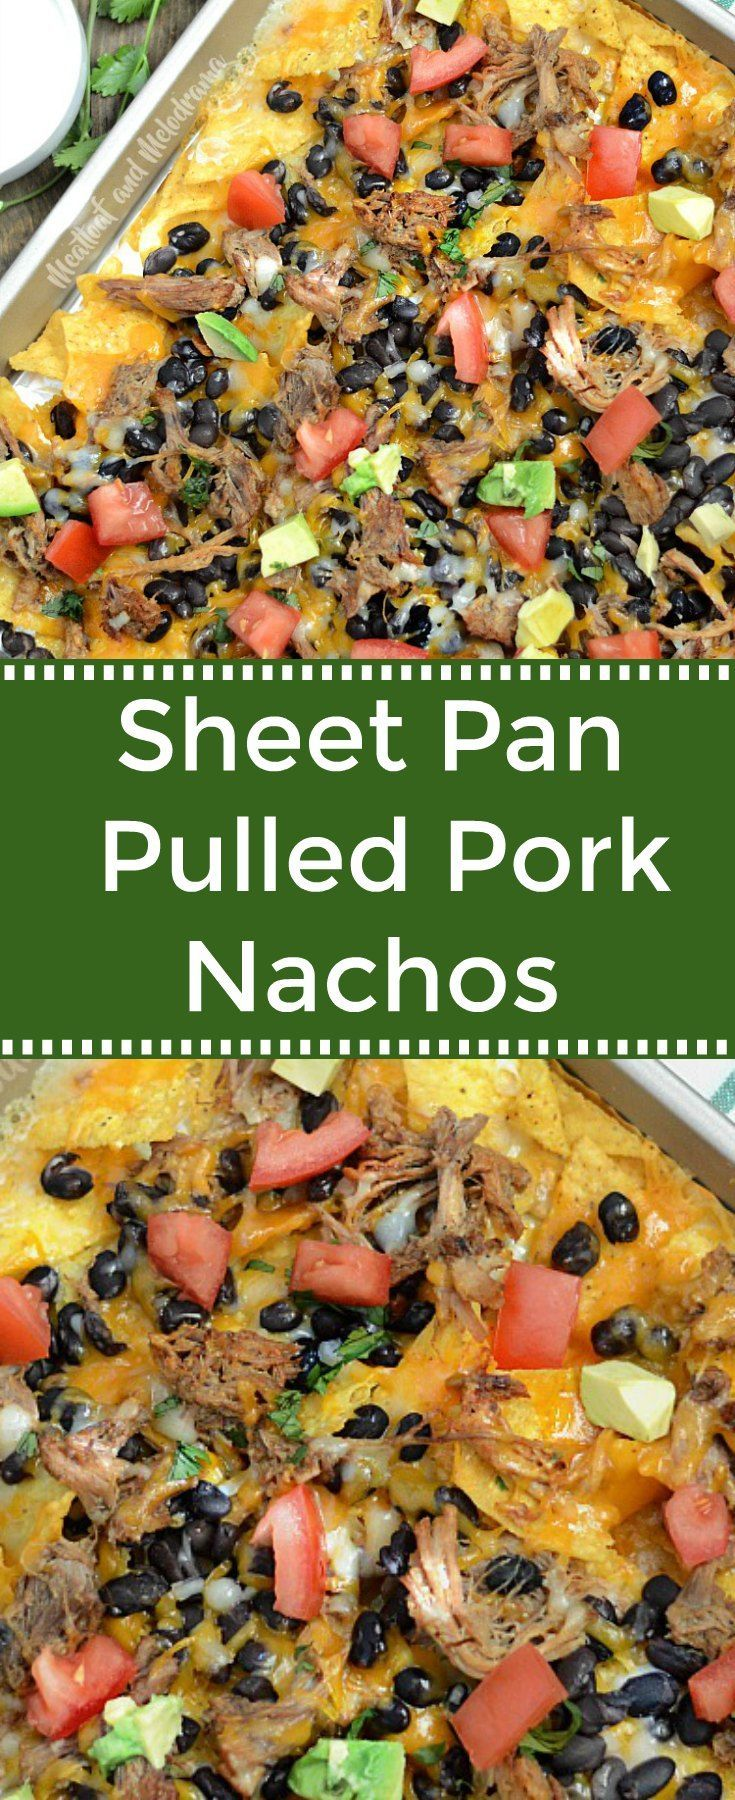 Sheet Pan Pulled Pork Nachos - Use leftover pork roast to make this quick and easy dinner or appetizer! from Meatloaf and Melodrama #instantpot #easydinner